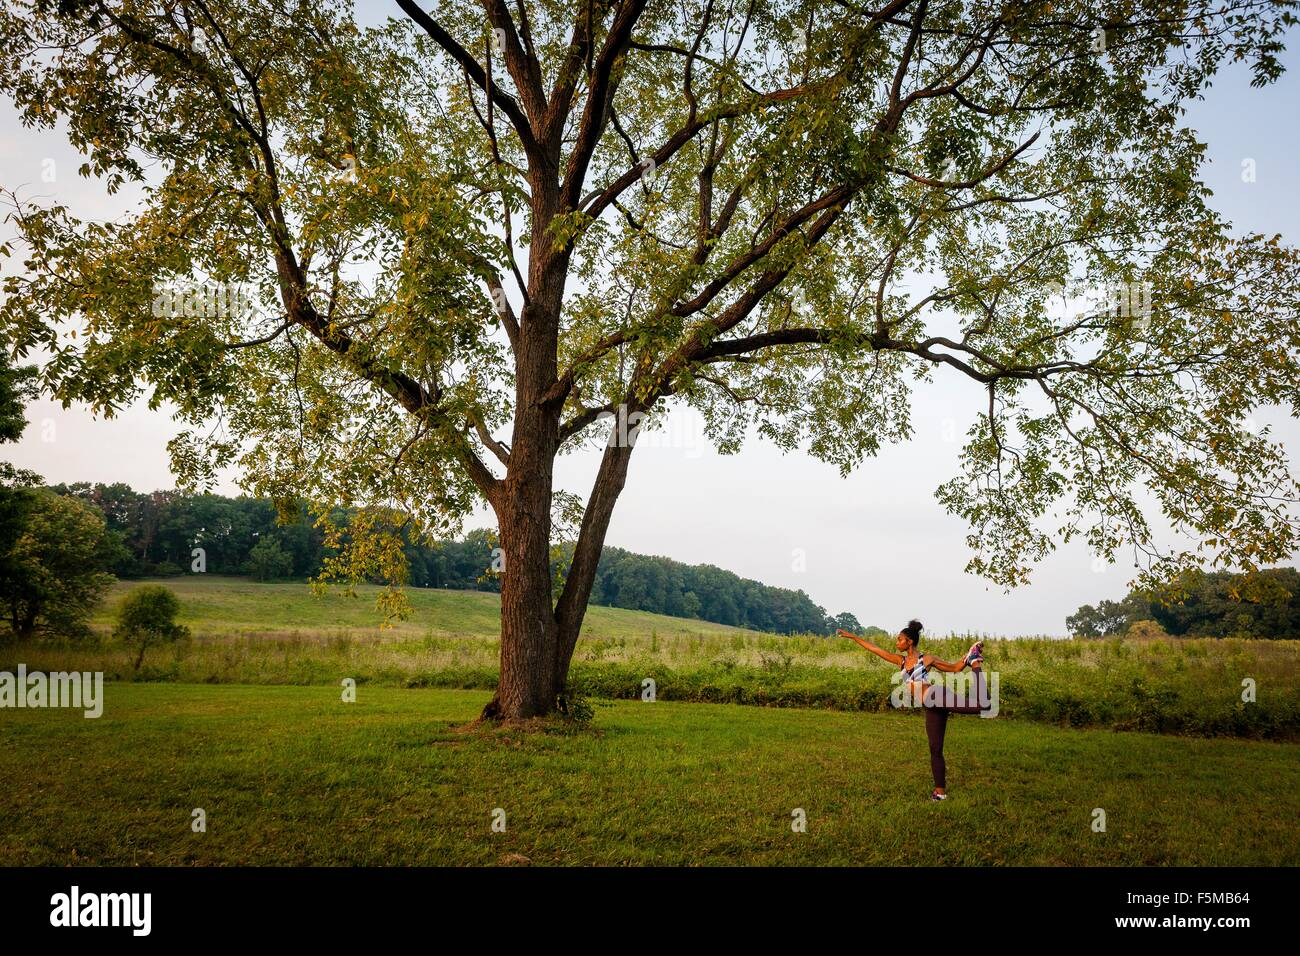 Distant view of young woman practicing yoga pose in rural park - Stock Image